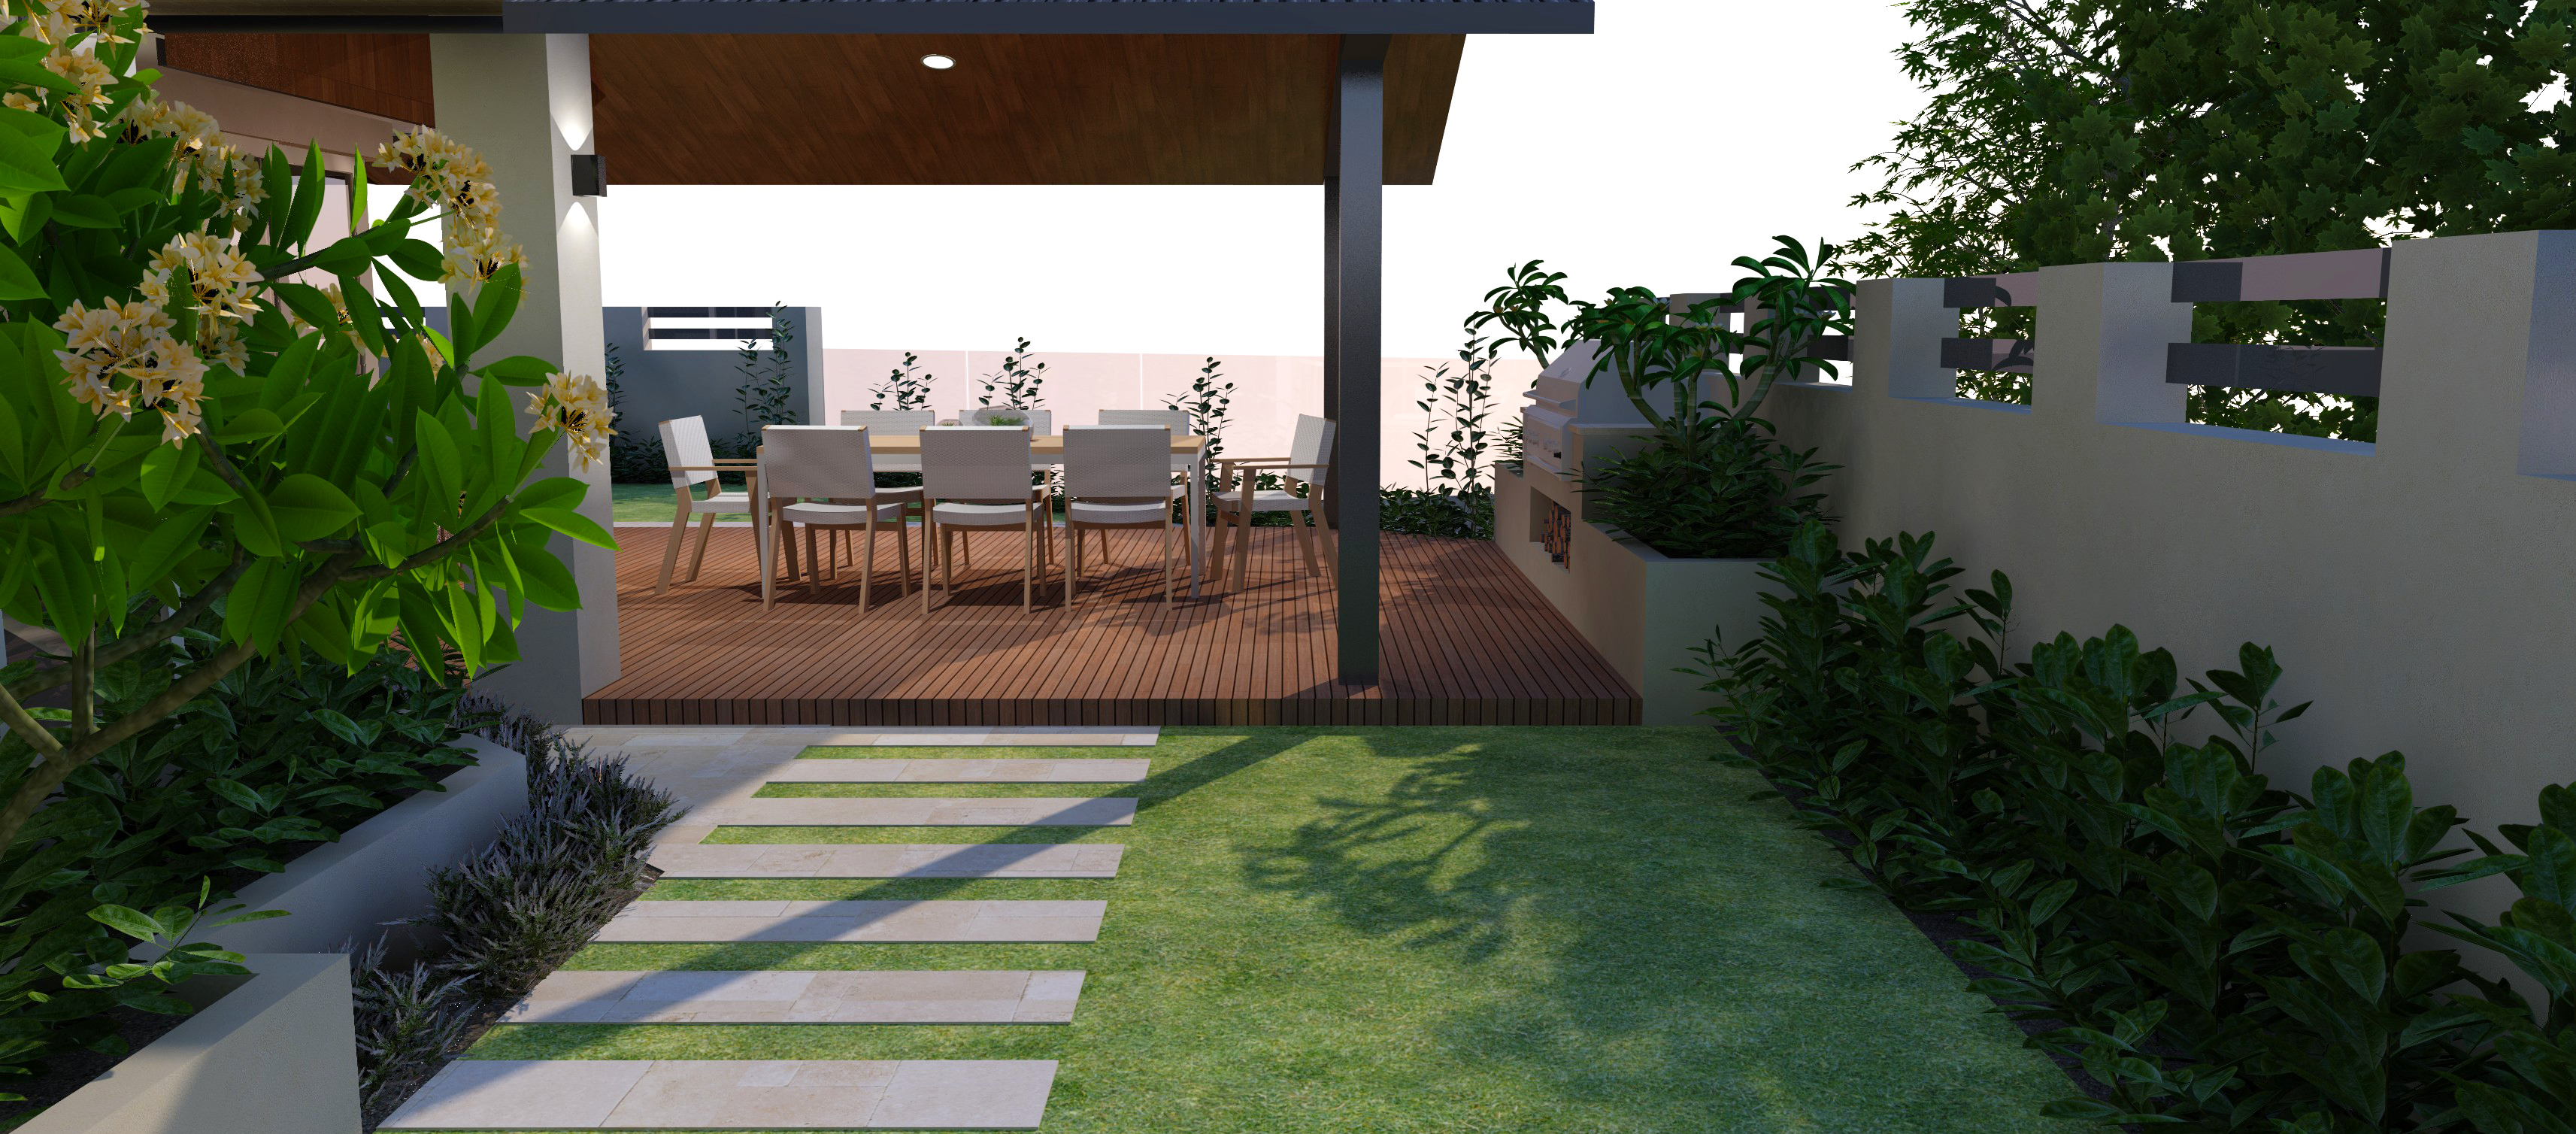 Sorrento Landscape Design